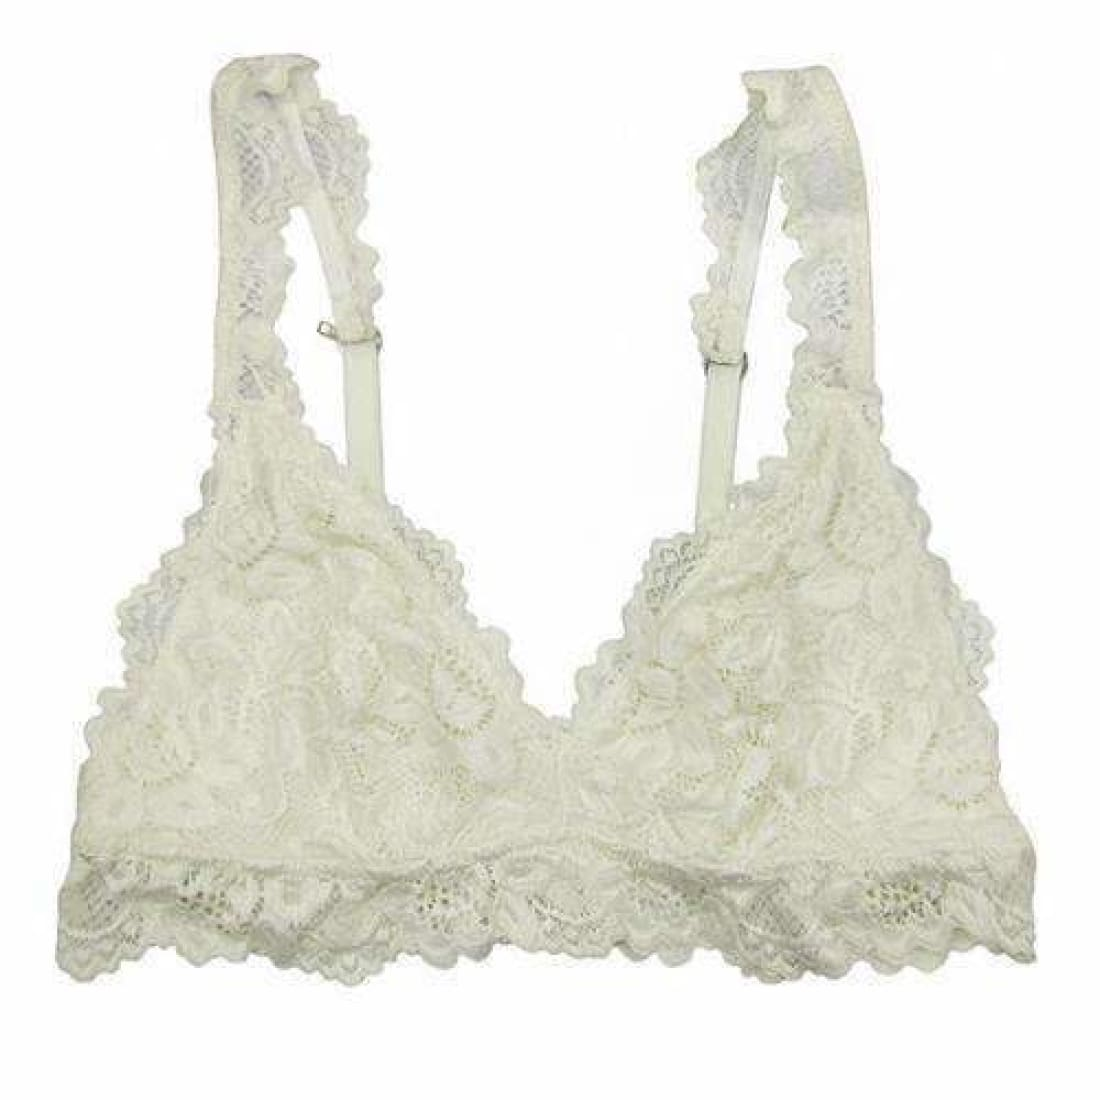 Undie Couture Womens Classic Lace Bralette Small / White Bras & Bra Sets